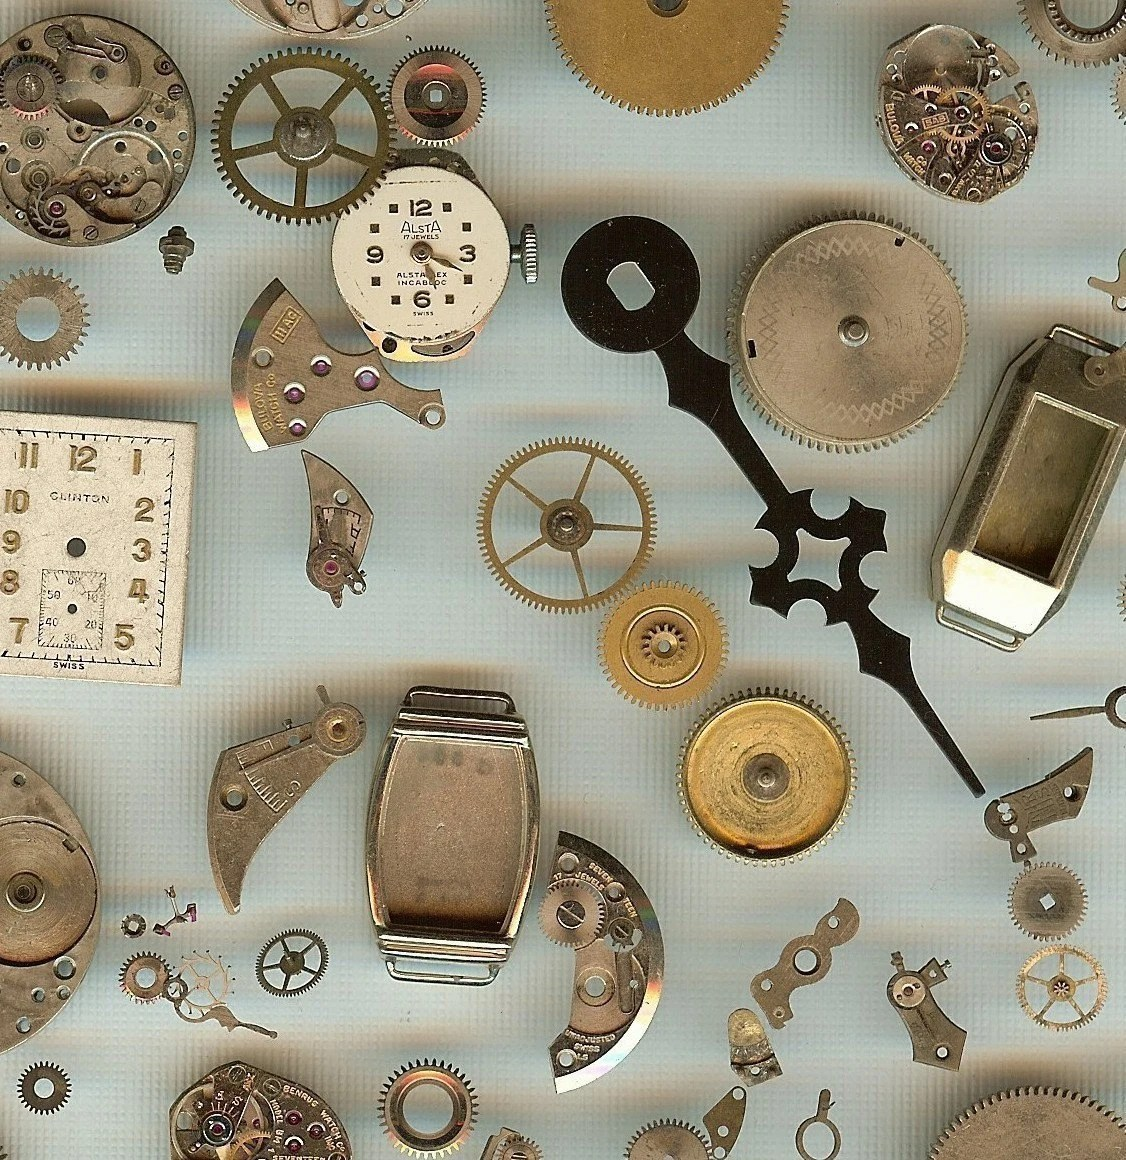 Steampunk Supplies Watch Parts Grab Bag 2 - Watch Wheels and Gears - Antique Watch Parts for Jewelry, Altered Art and Assemblage